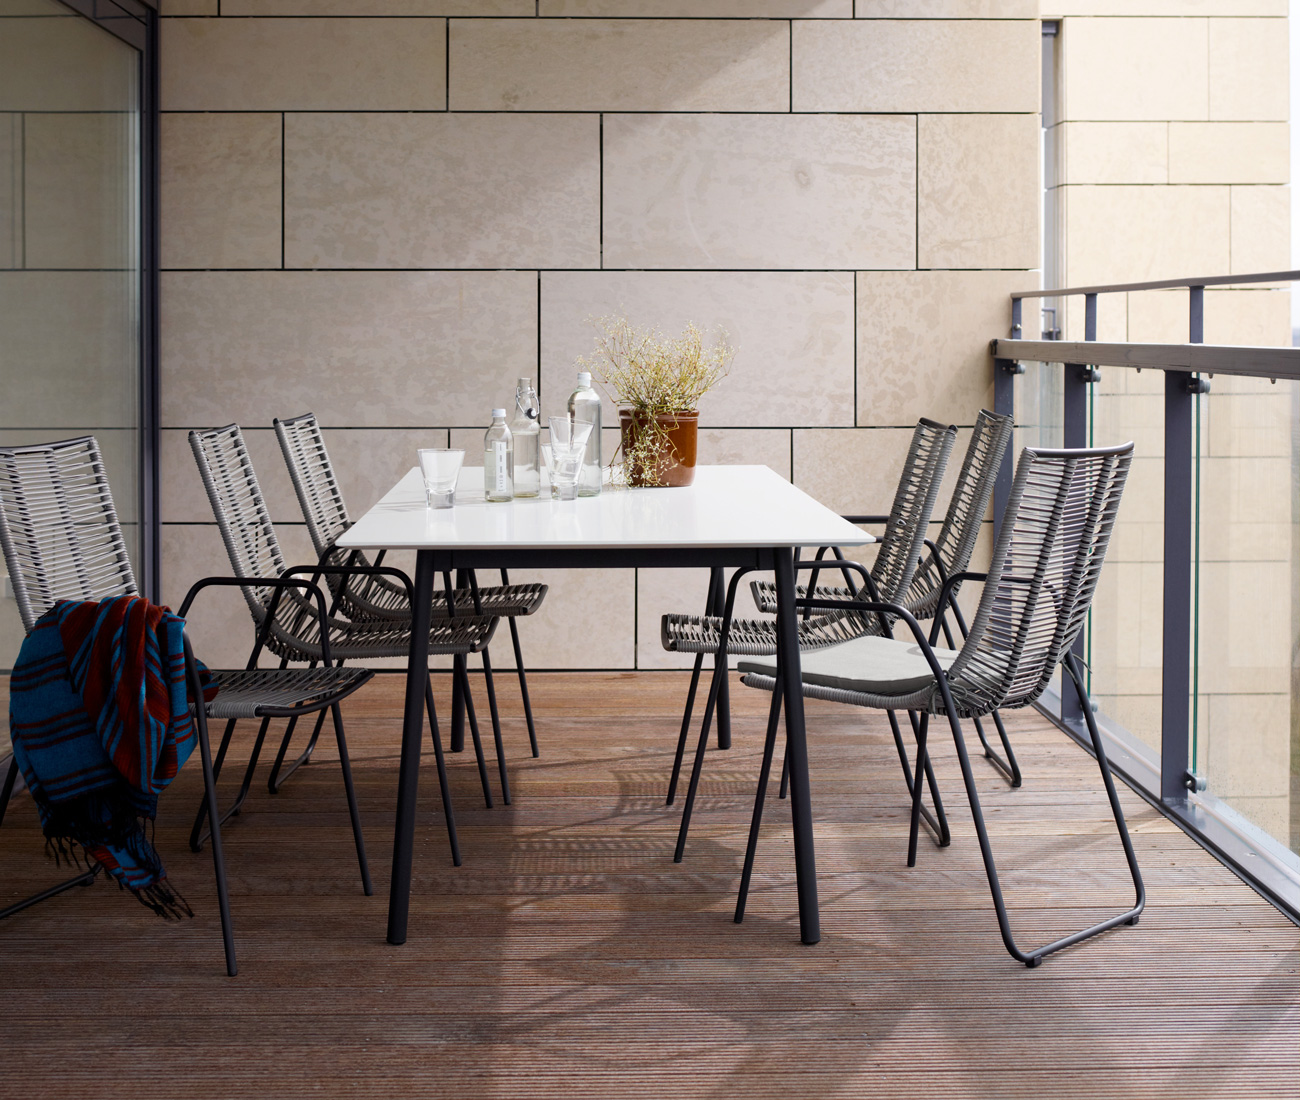 Outdoor Torino dining table in white and grey Elba dining chairs